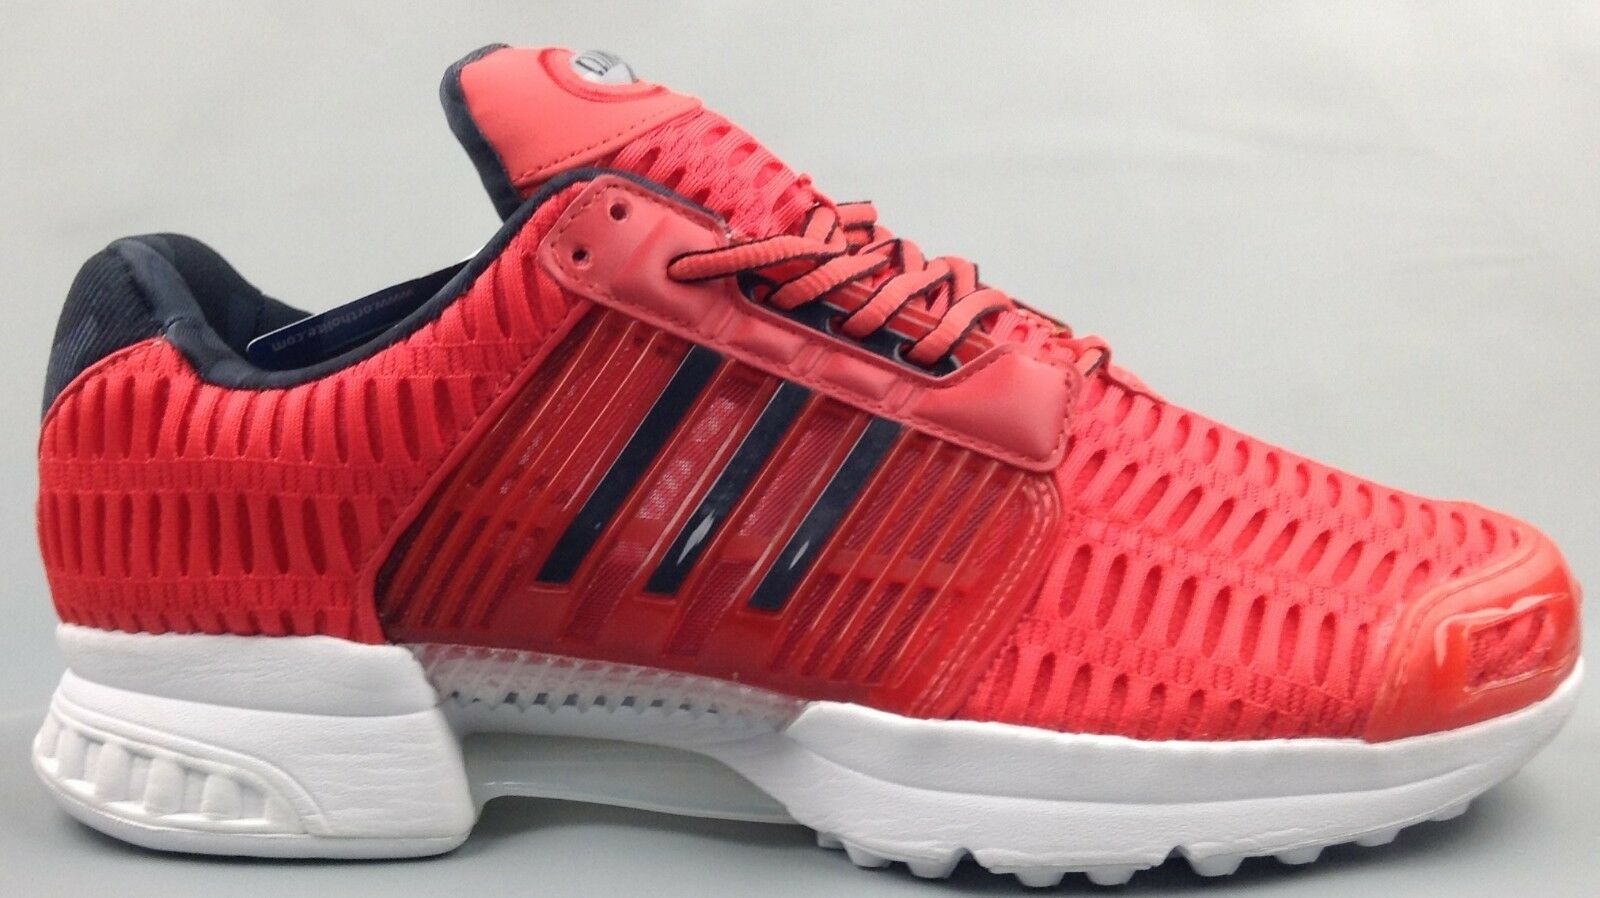 ADIDAS CLIMA COOL 1 - SIZE 10.5 - RED   WHITE   BLACK